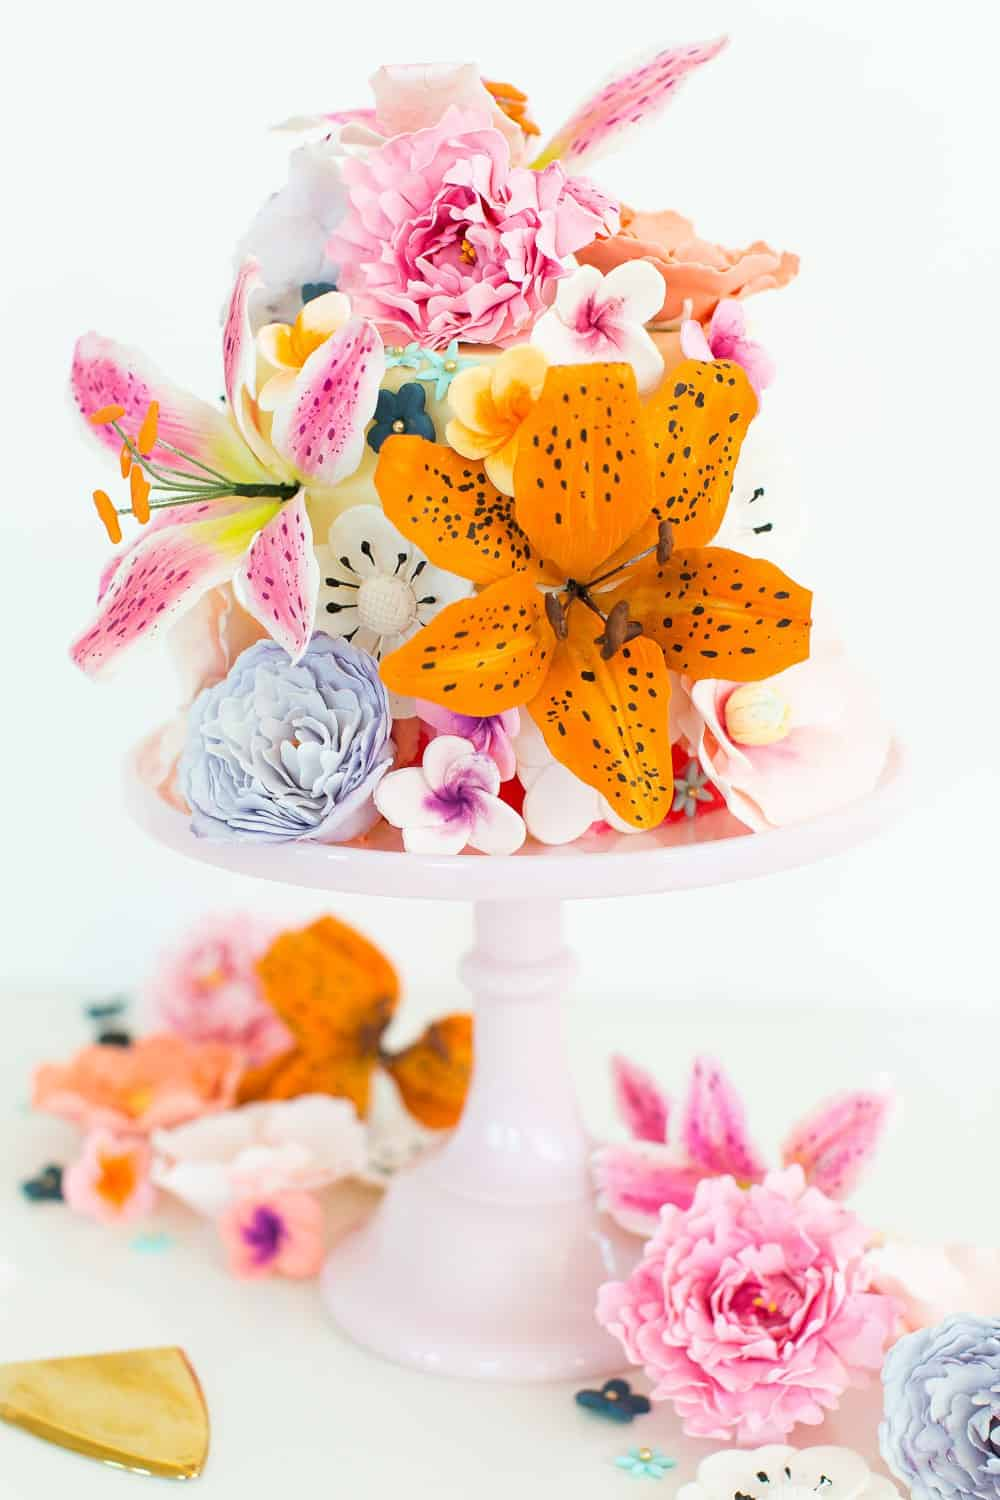 DIY-Sugar-Flower-Cake-48